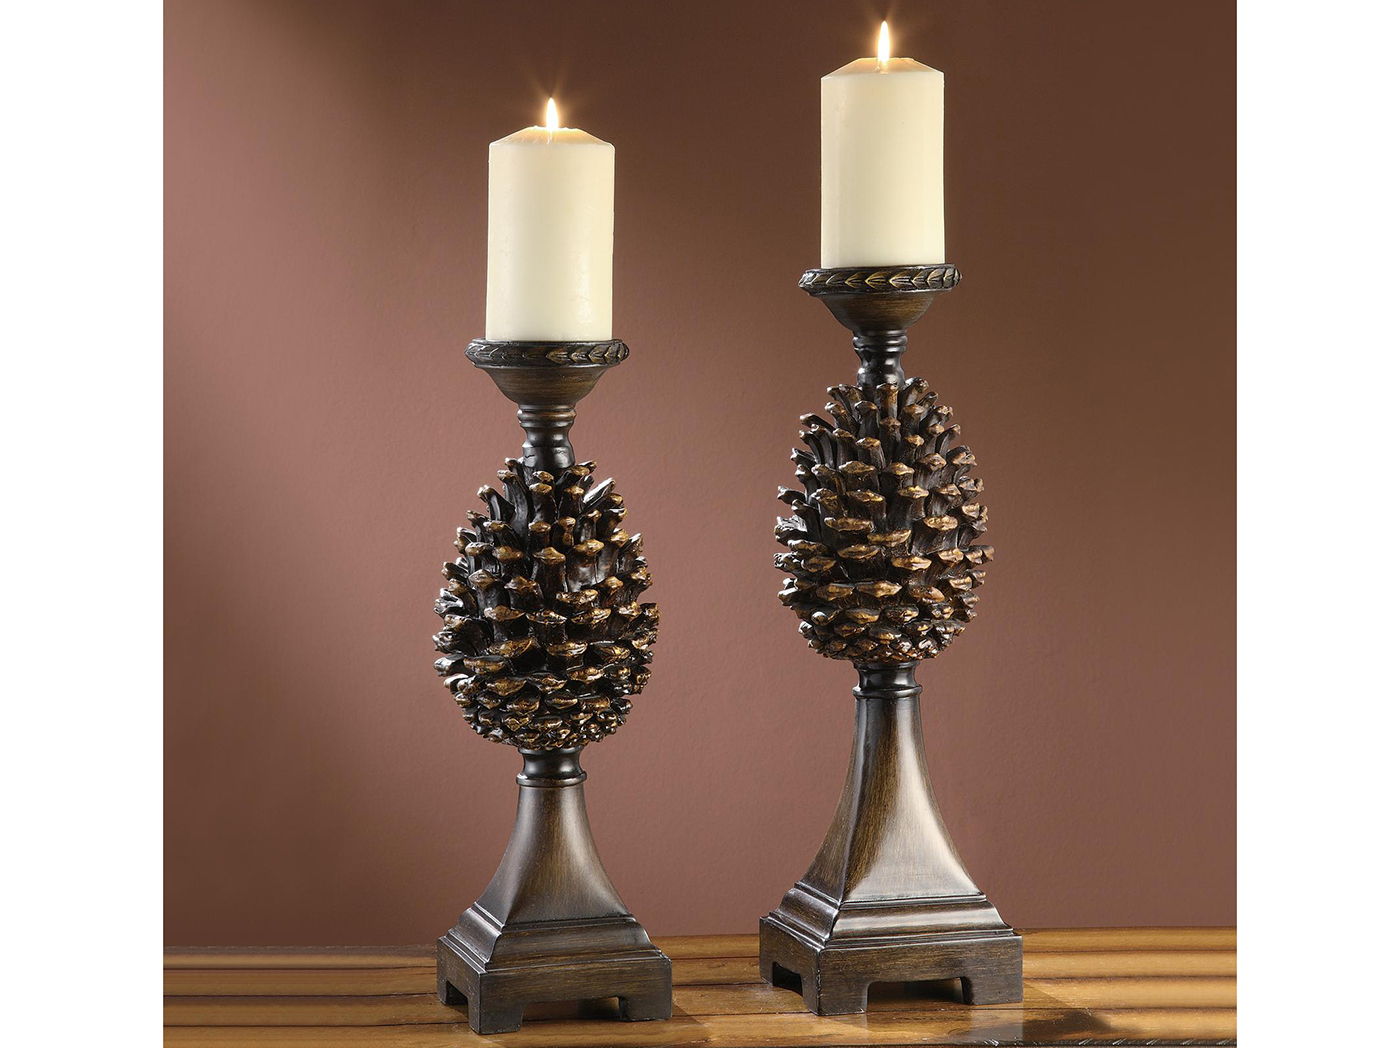 "Set of 2 Pinecone Candleholders 17/18.5""H"